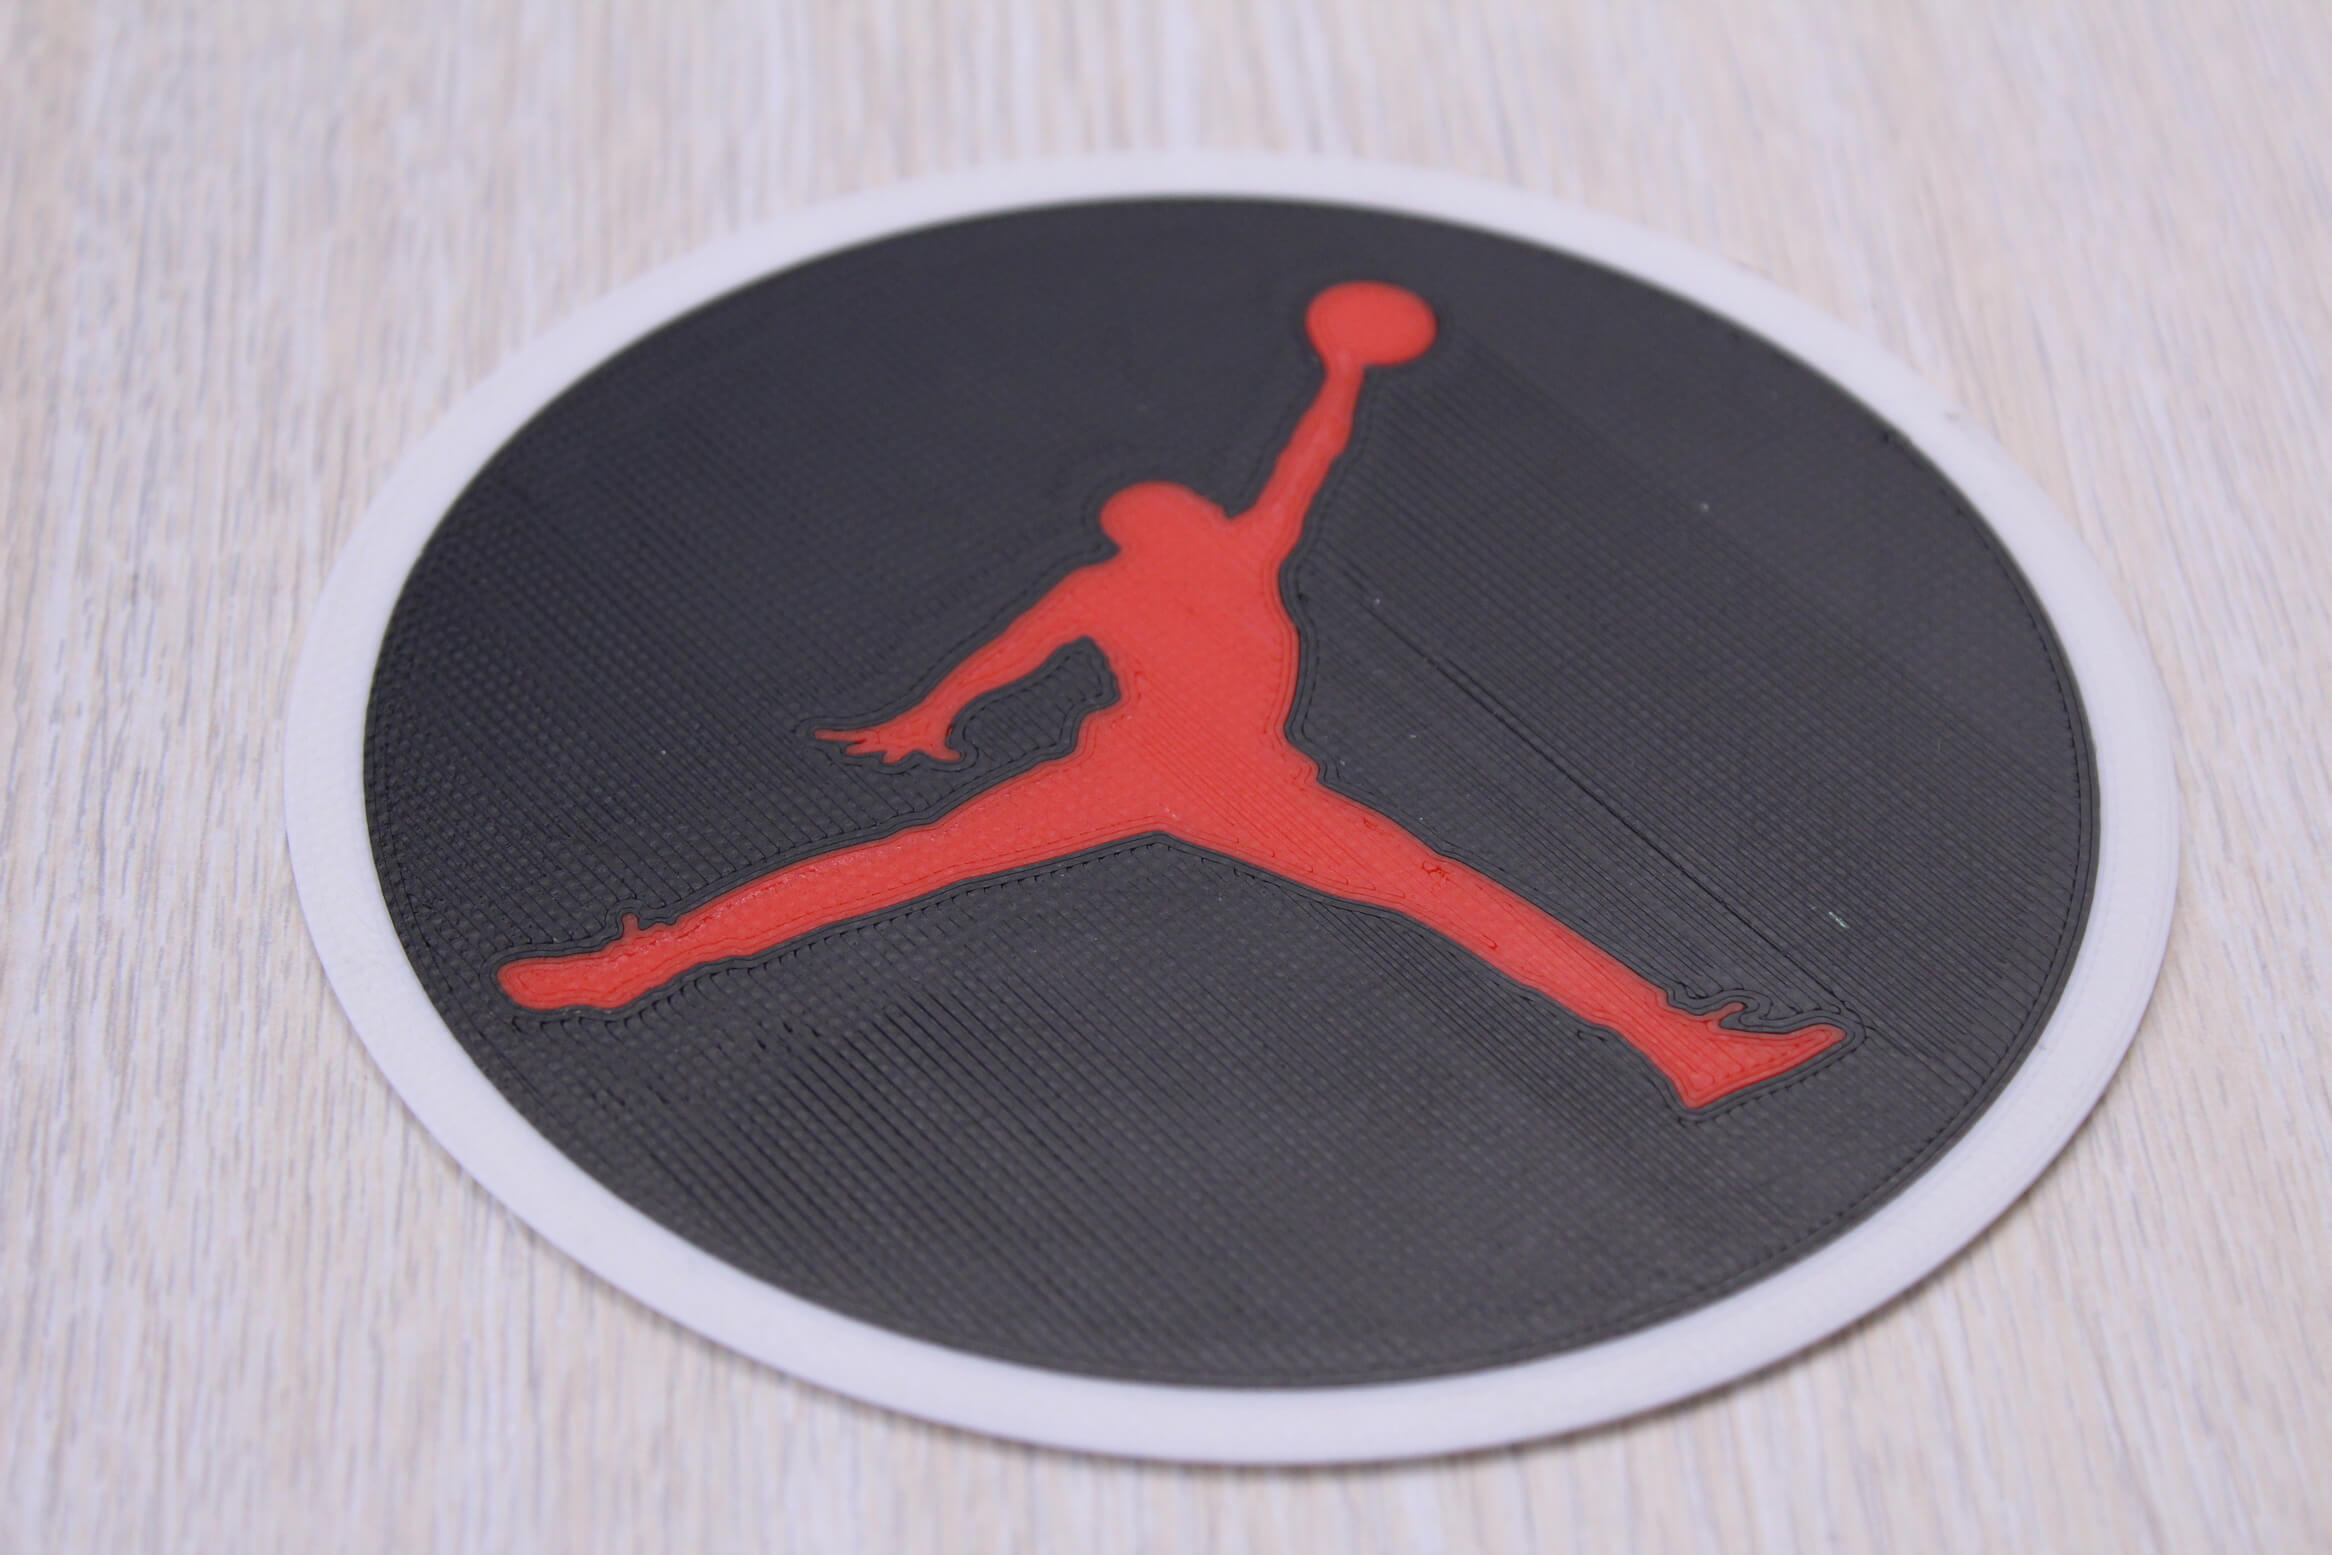 Jordan sign Multi Color 3D Print 3 | Multi-Color 3D Printing Using IdeaMaker